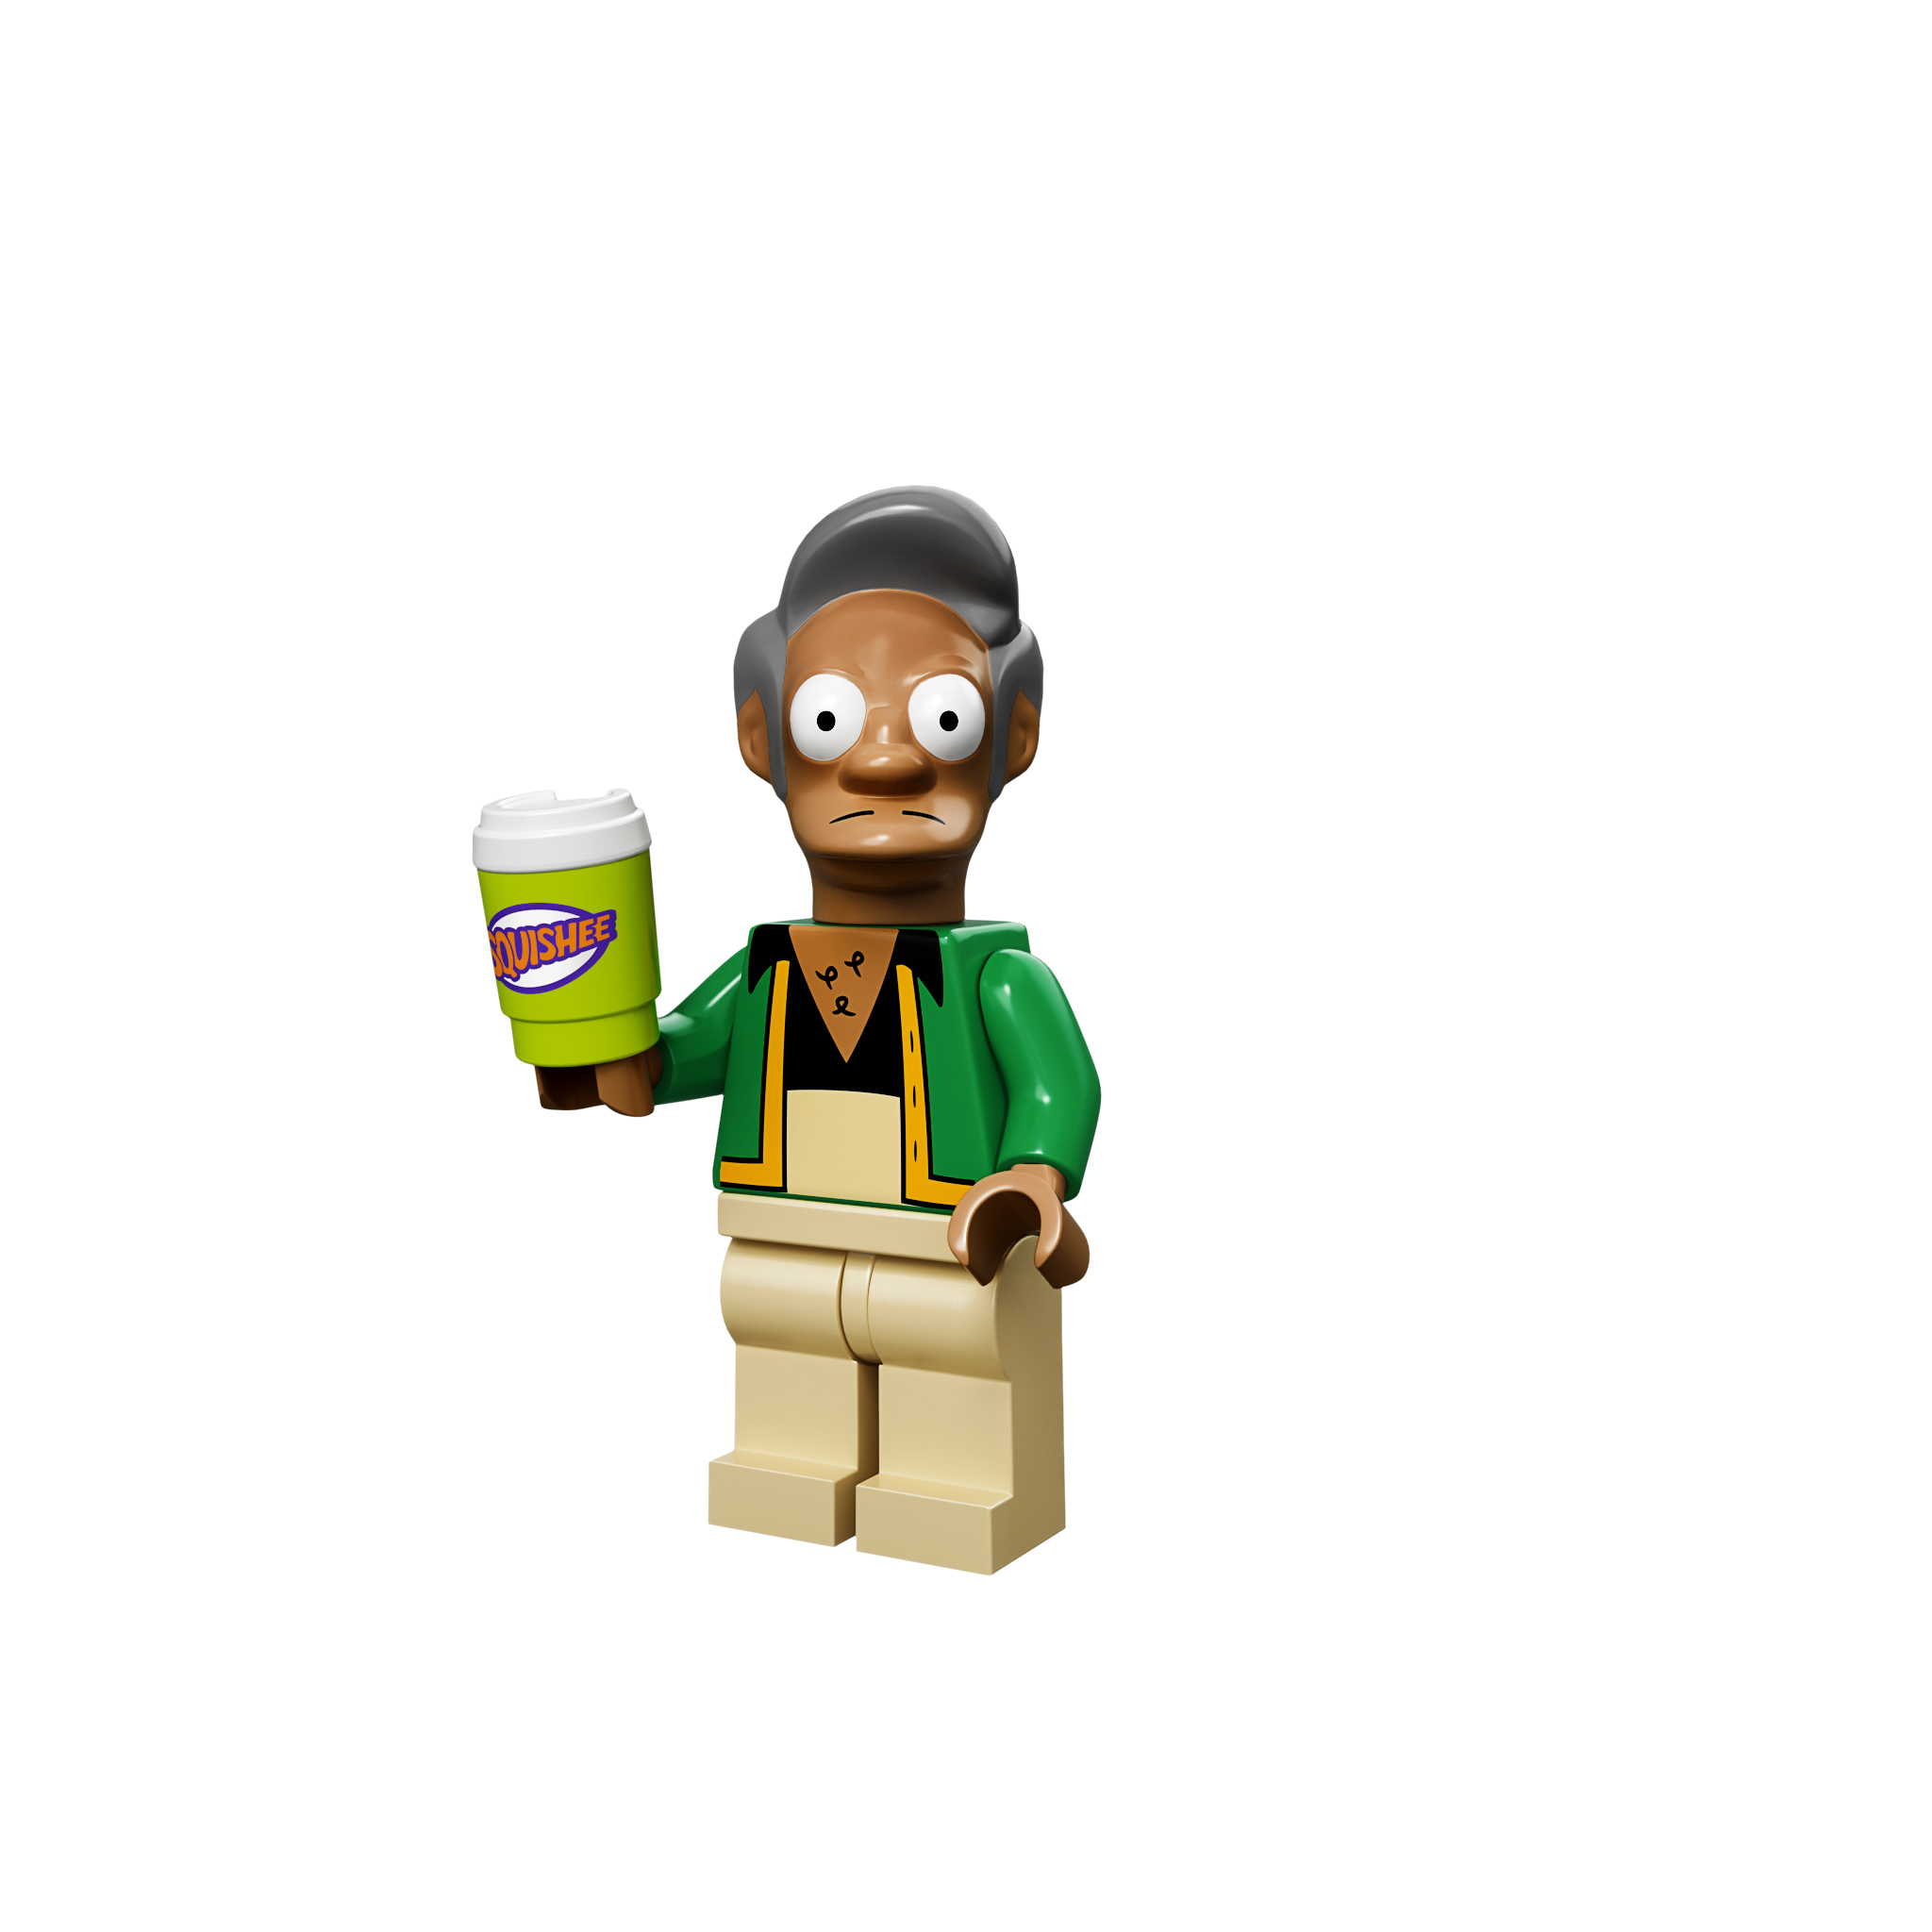 Lego Figures Toys : Lego reveals the simpsons collectable minifigures